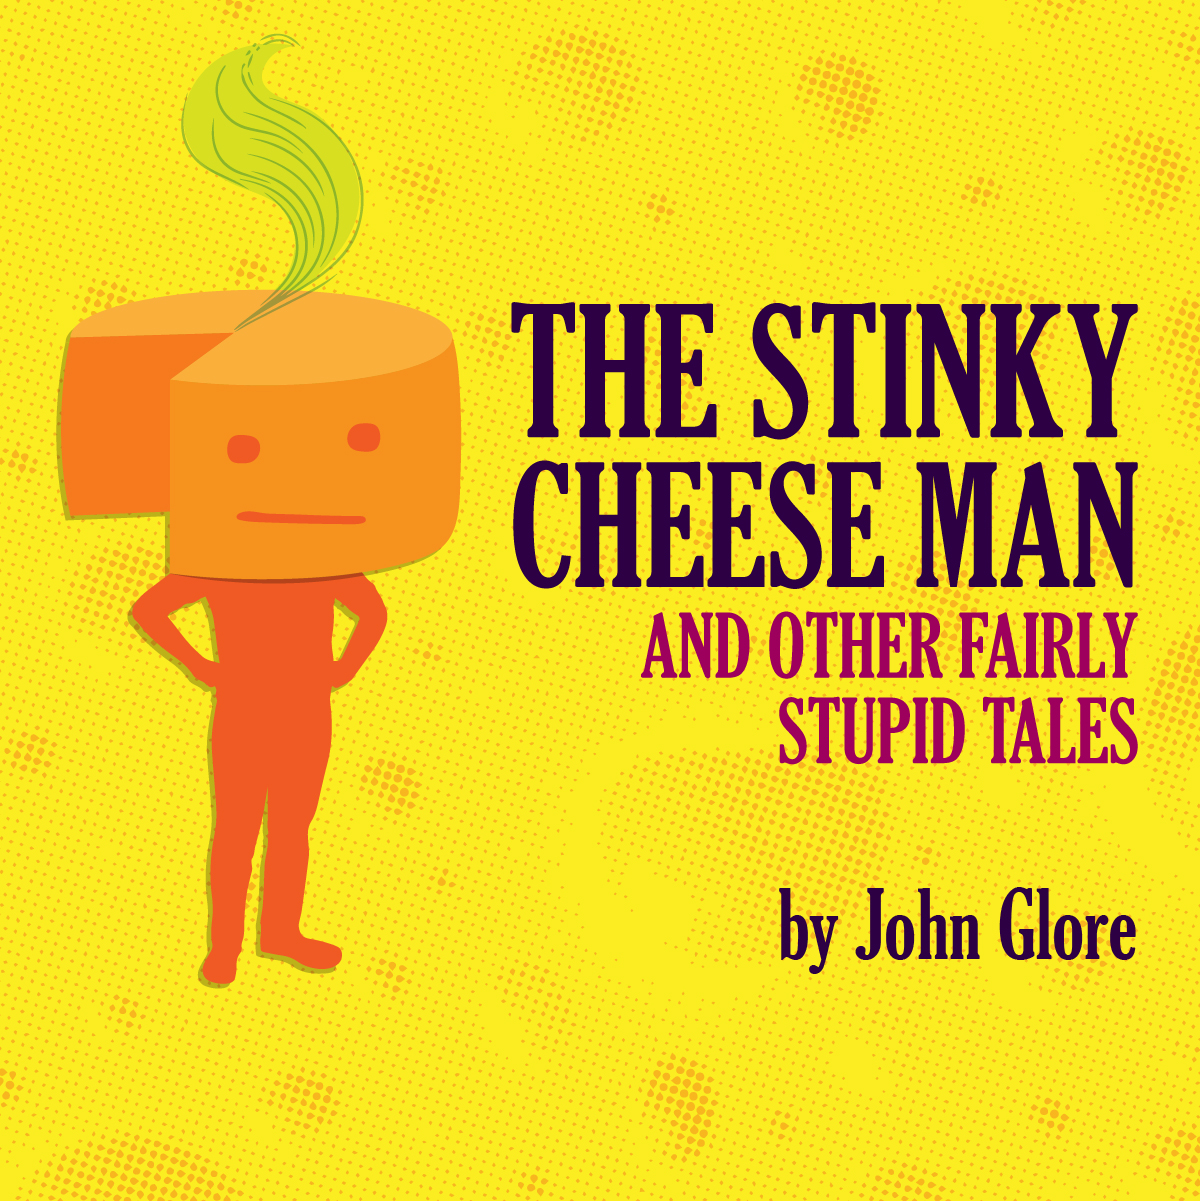 Stinky Cheese Man Graphic